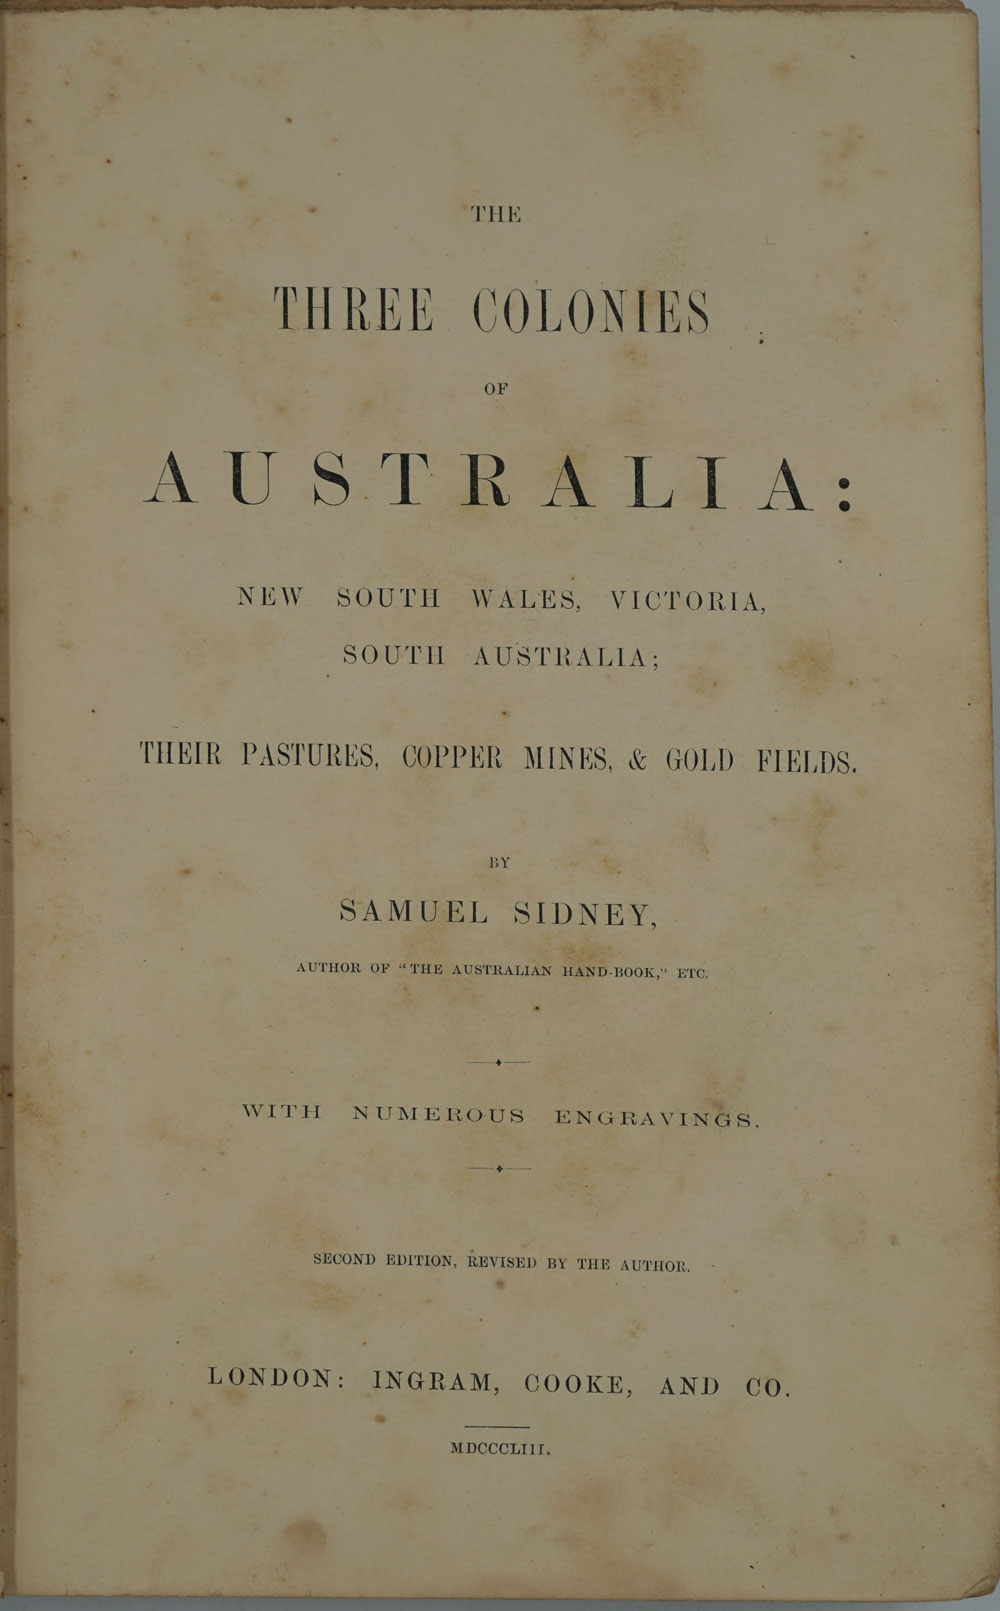 Three Colonies of Australia: New South Wales, Victoria, South Australia   Their Pastures, Copper Mines, & Gold Fields by Samuel Sidney on Antipodean